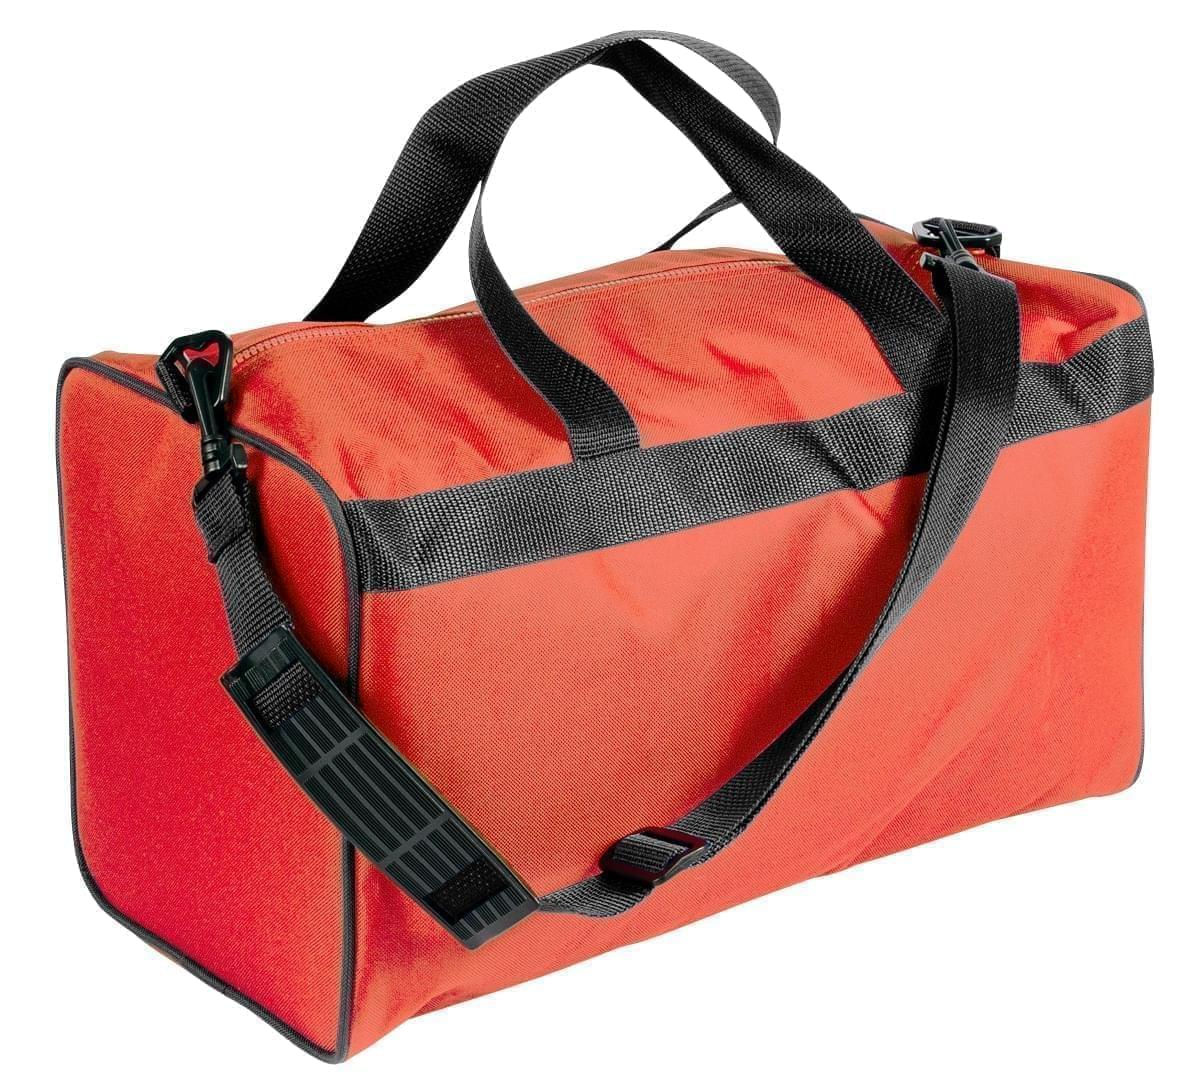 USA Made Nylon Poly Weekend Duffles, Orange-Black, WLKX31AAXR